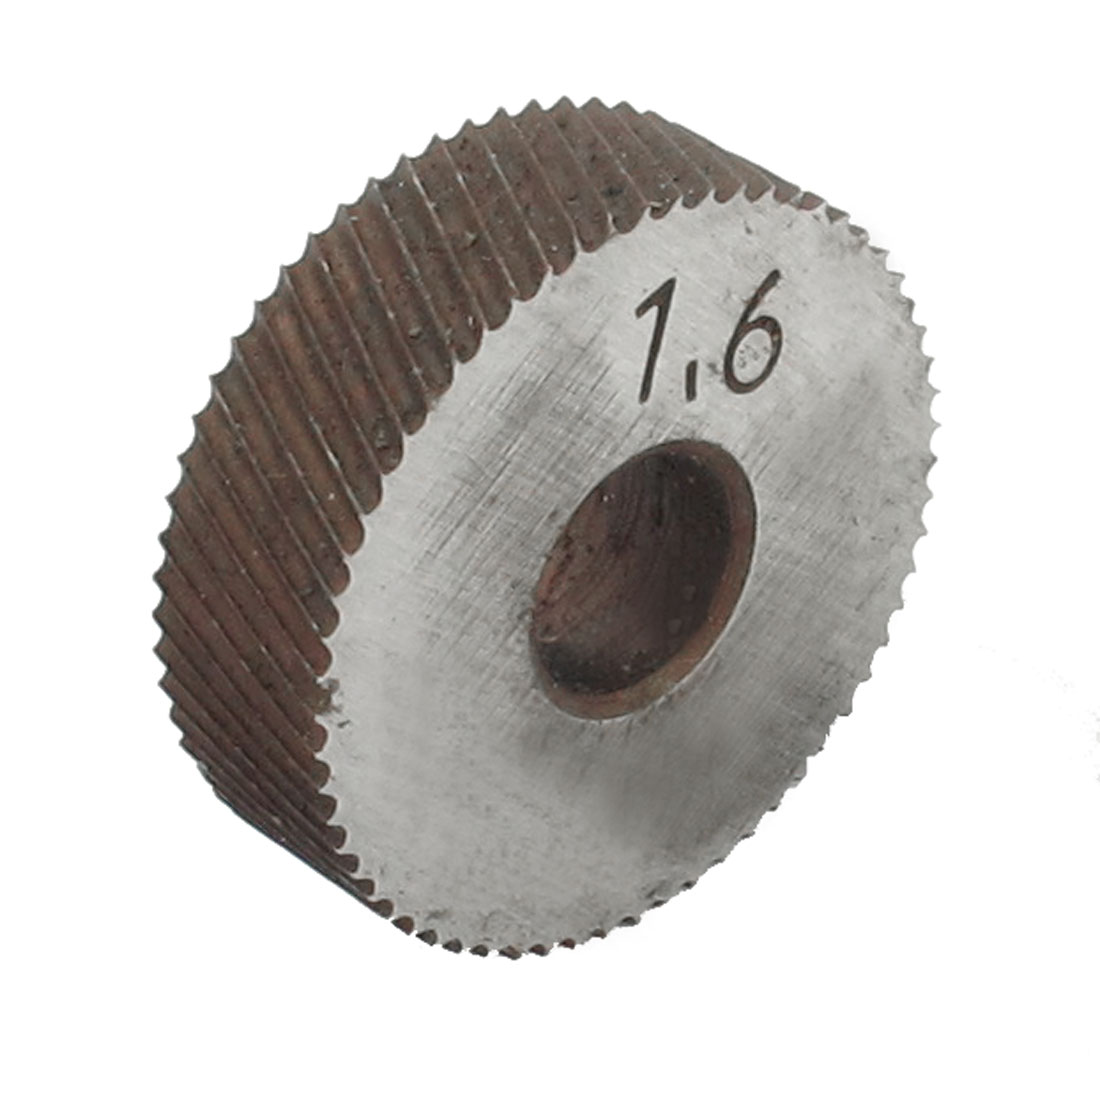 Diagonal Coarse 1.6mm Pitch Linear Knurl Wheel Knurling Tool